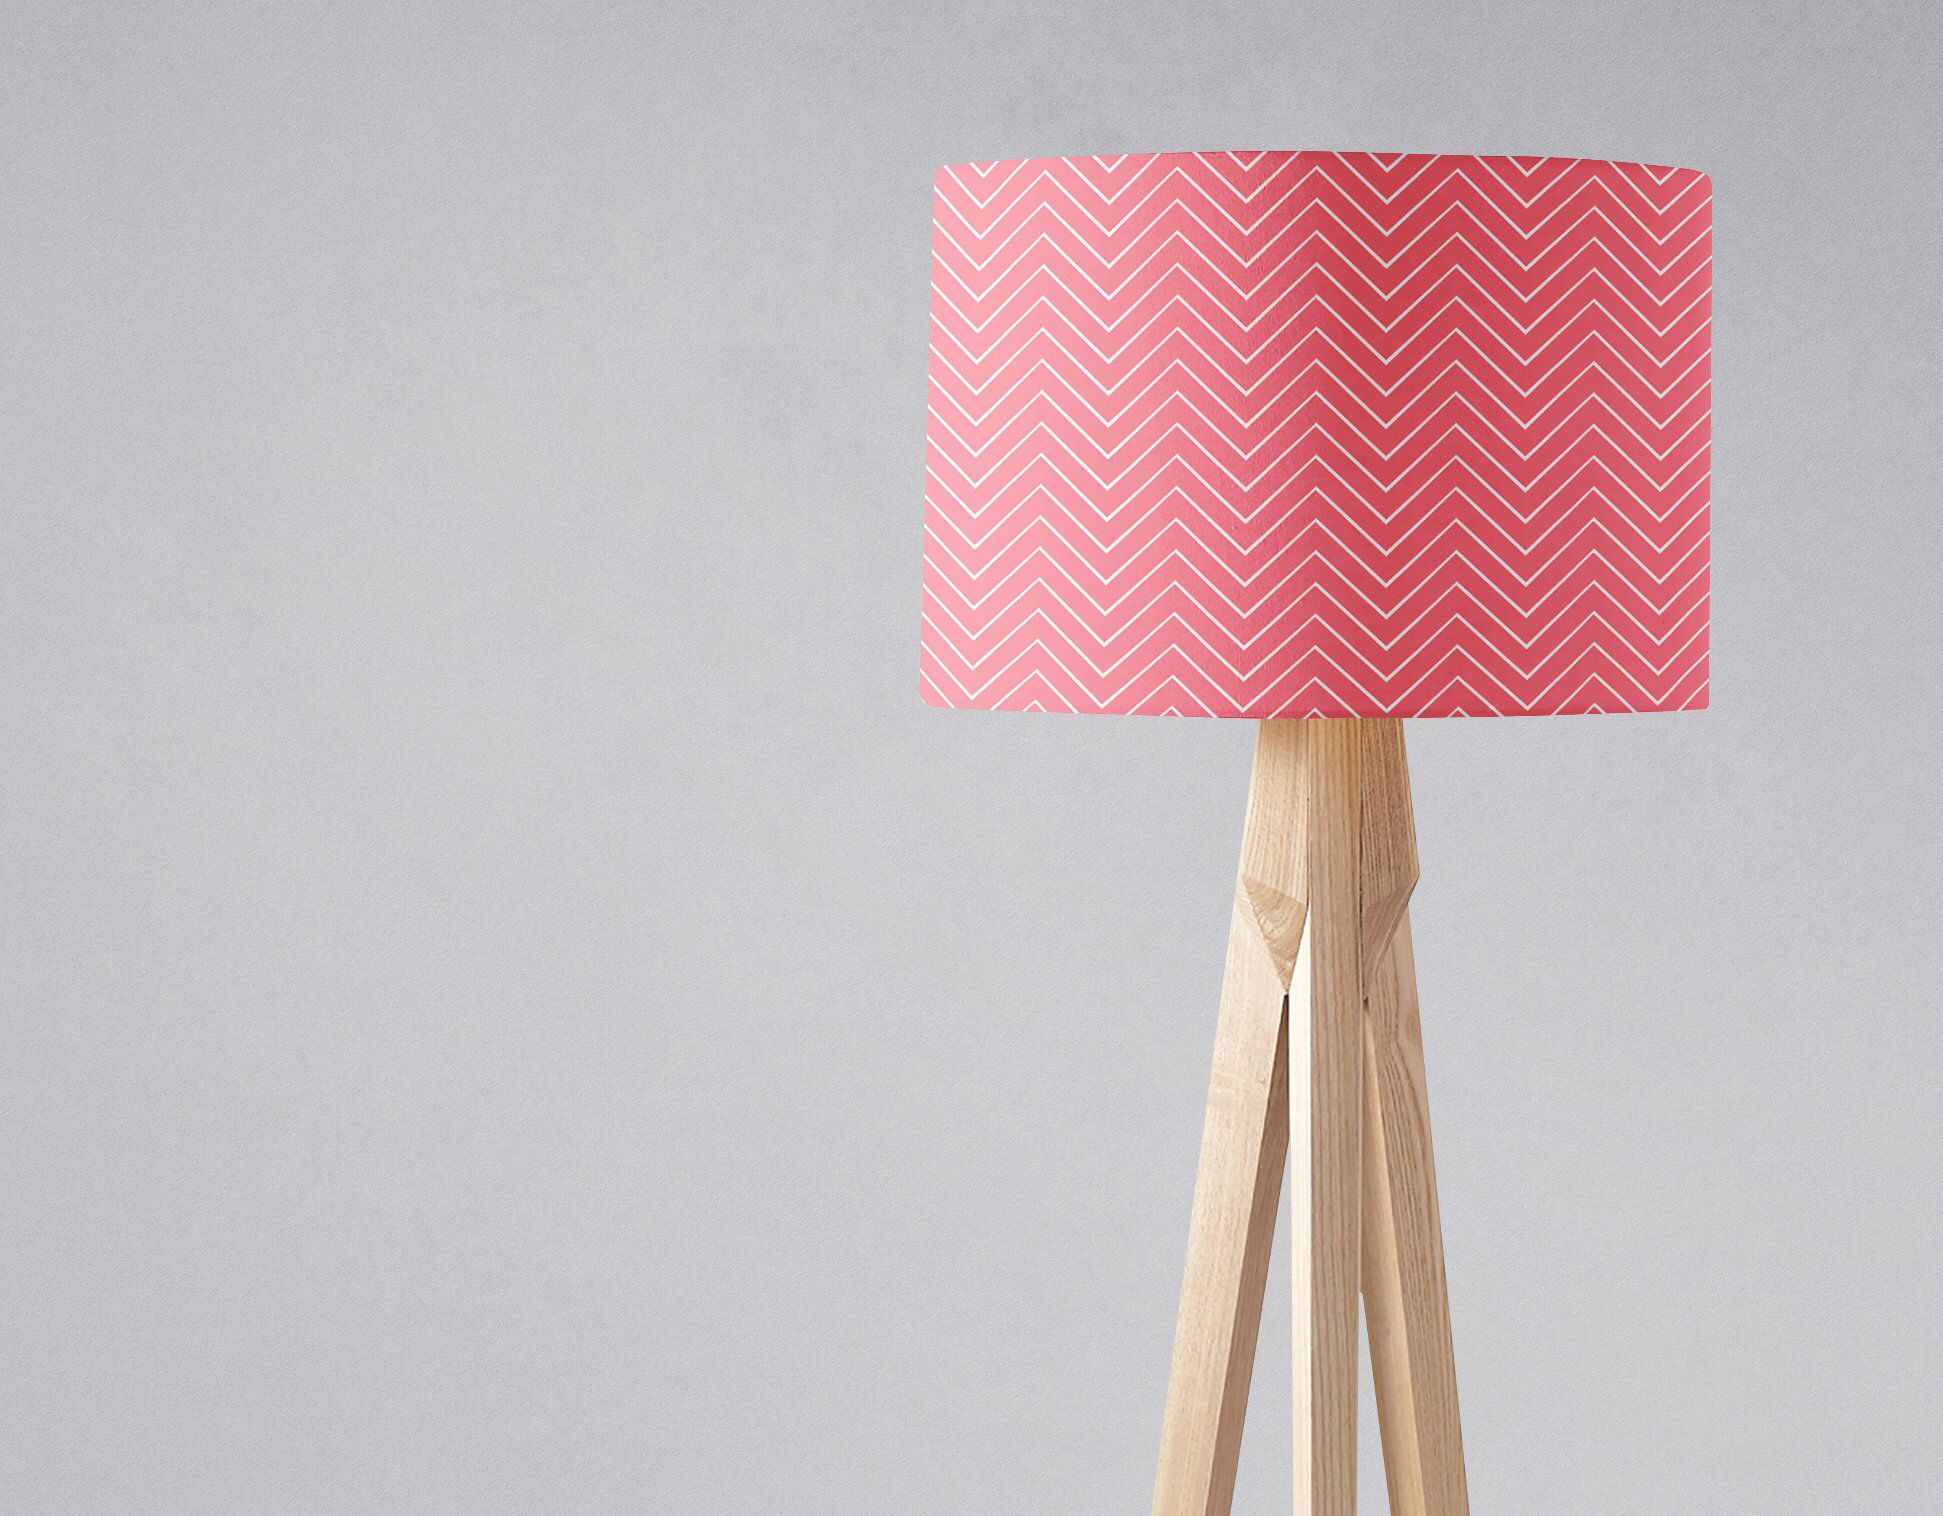 Pink Lampshade Pink White Nursery Chevron Lamp Shade Simple Lamp Pink Living Room Decor Pink Home Decor Chevrons Ceiling Light Shade Pink Home Decor White Nursery Ceiling Light Shades